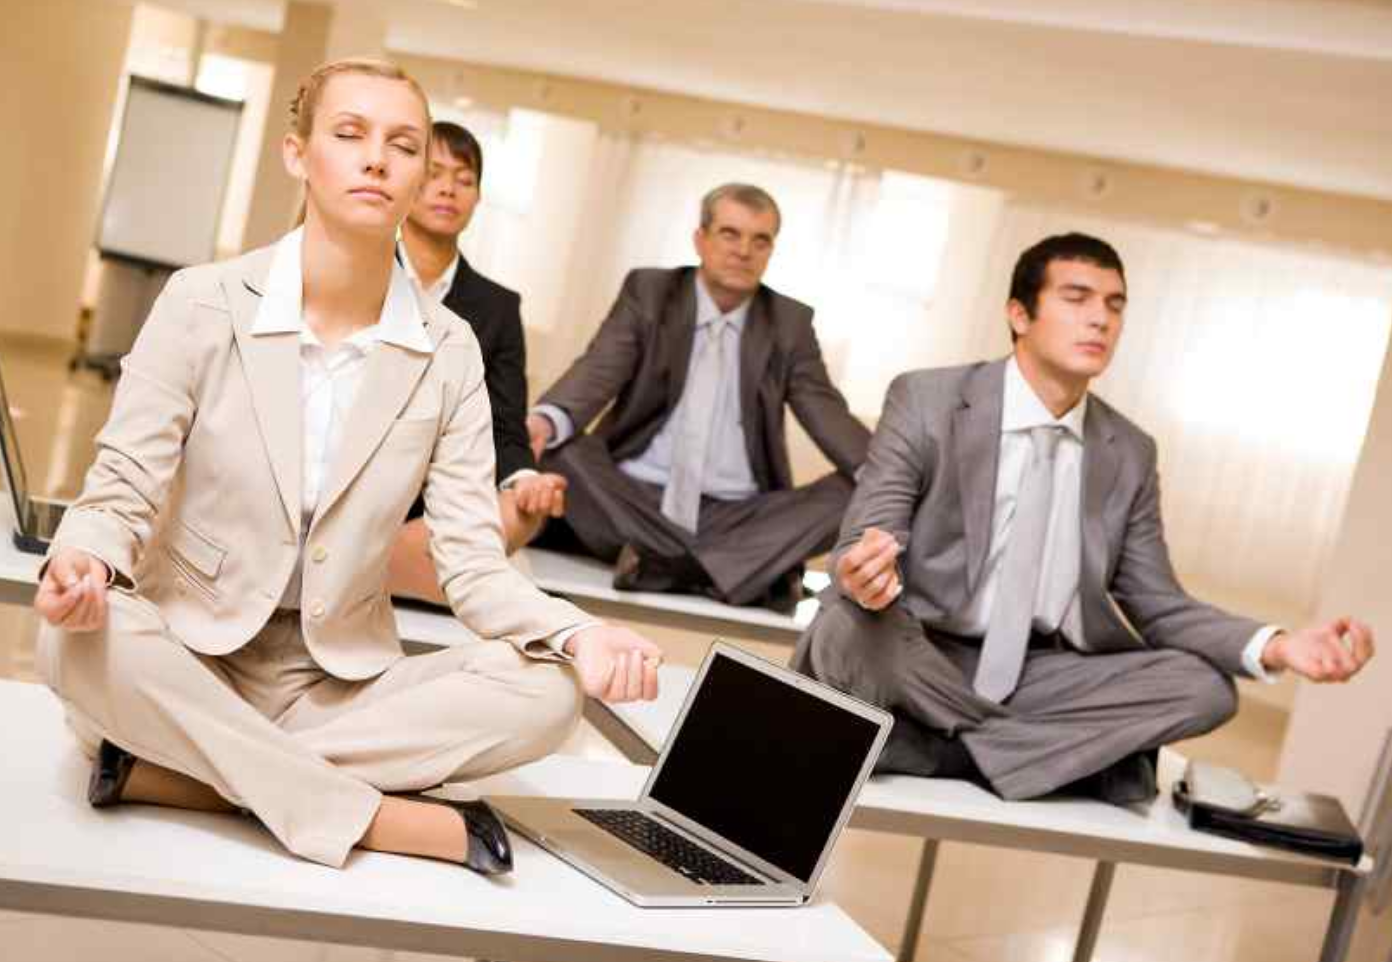 WORKPLACE WELLNESS - Meditation and intuition are the two most effective business tools for 21st century executives (according to the Harvard Business School and INSEAD, Europe's leading business school). Contact us for presentations, workshops, and meditation experiences customized for your place of business. Pricing Varies.